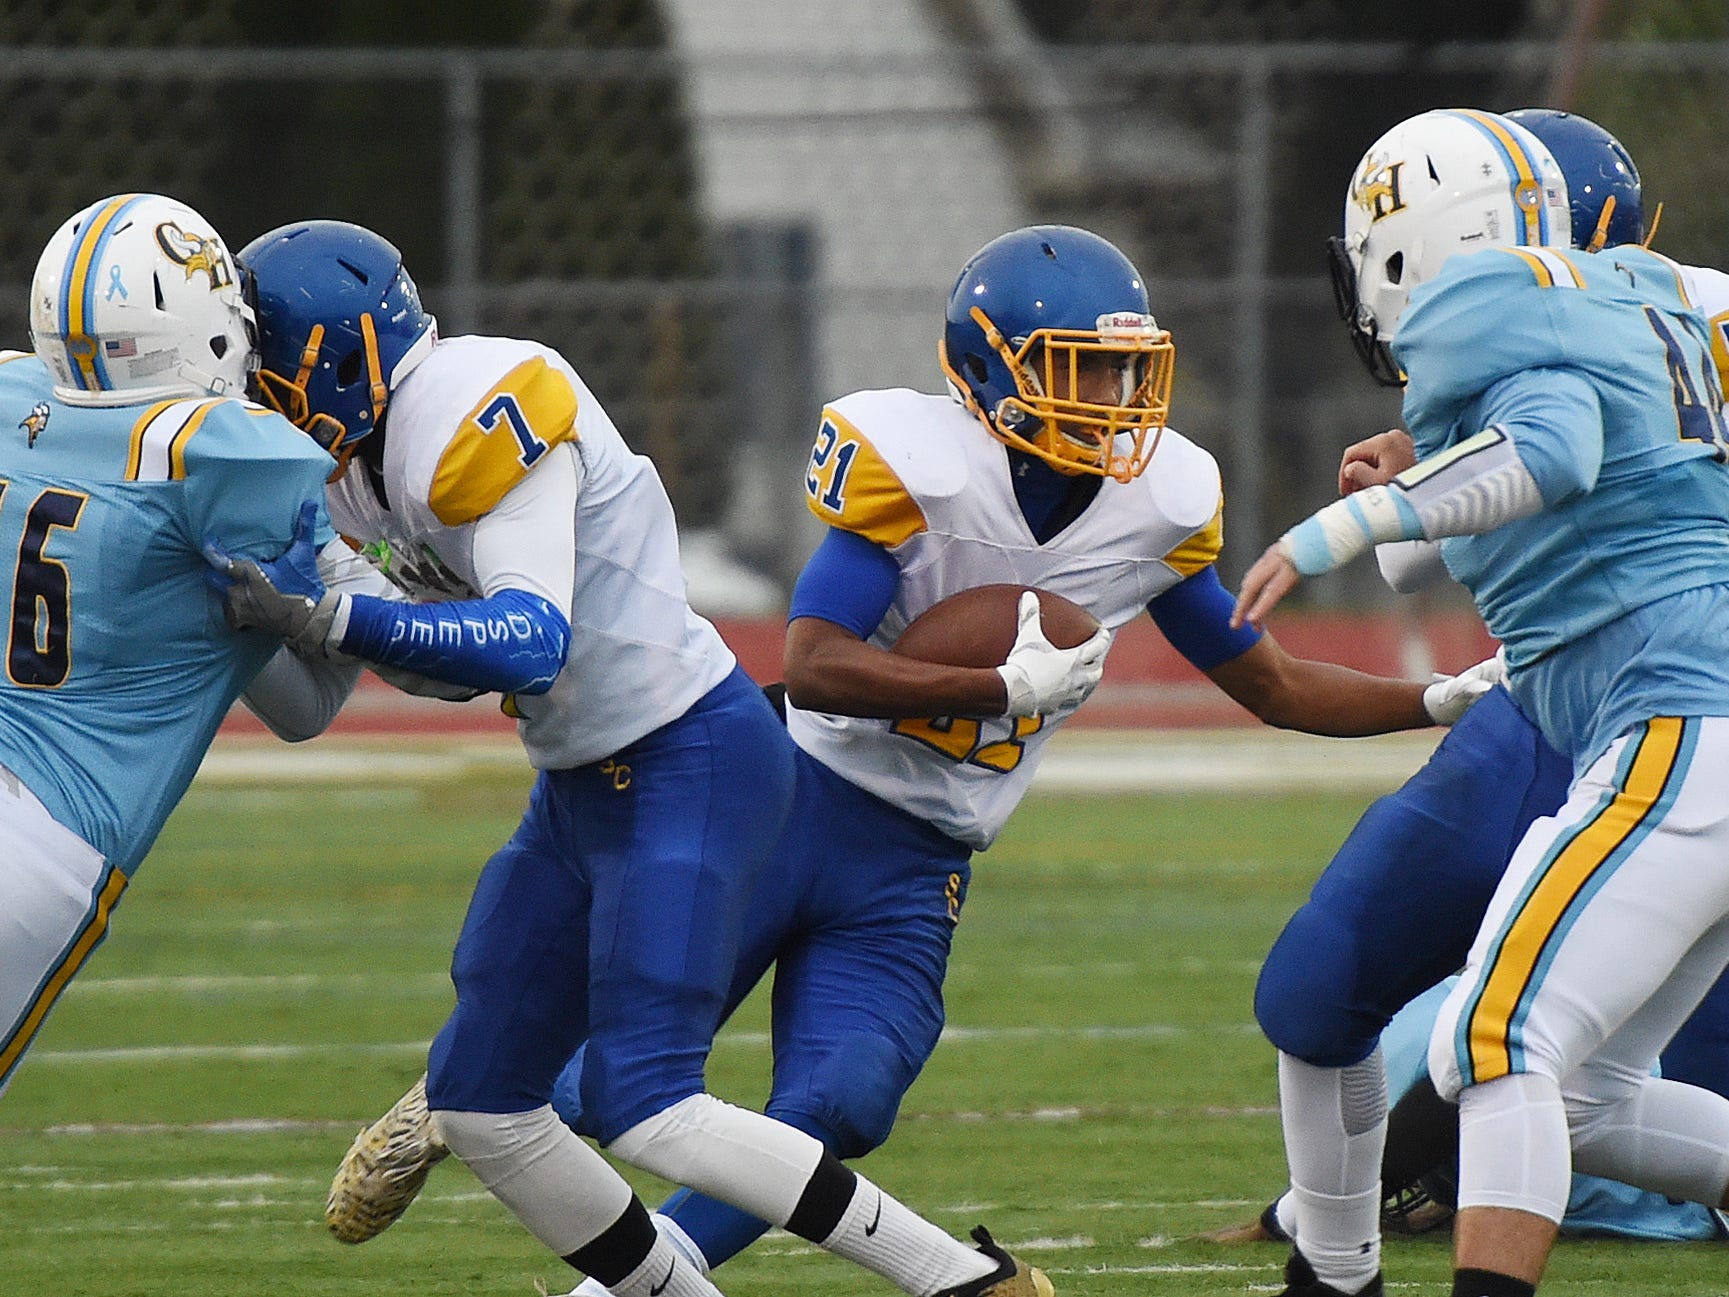 Sussex Central's Central's TyJhir Sheppard-Parker gains some yardage against Cape Henlopen during the game Oct. 26, 2018.